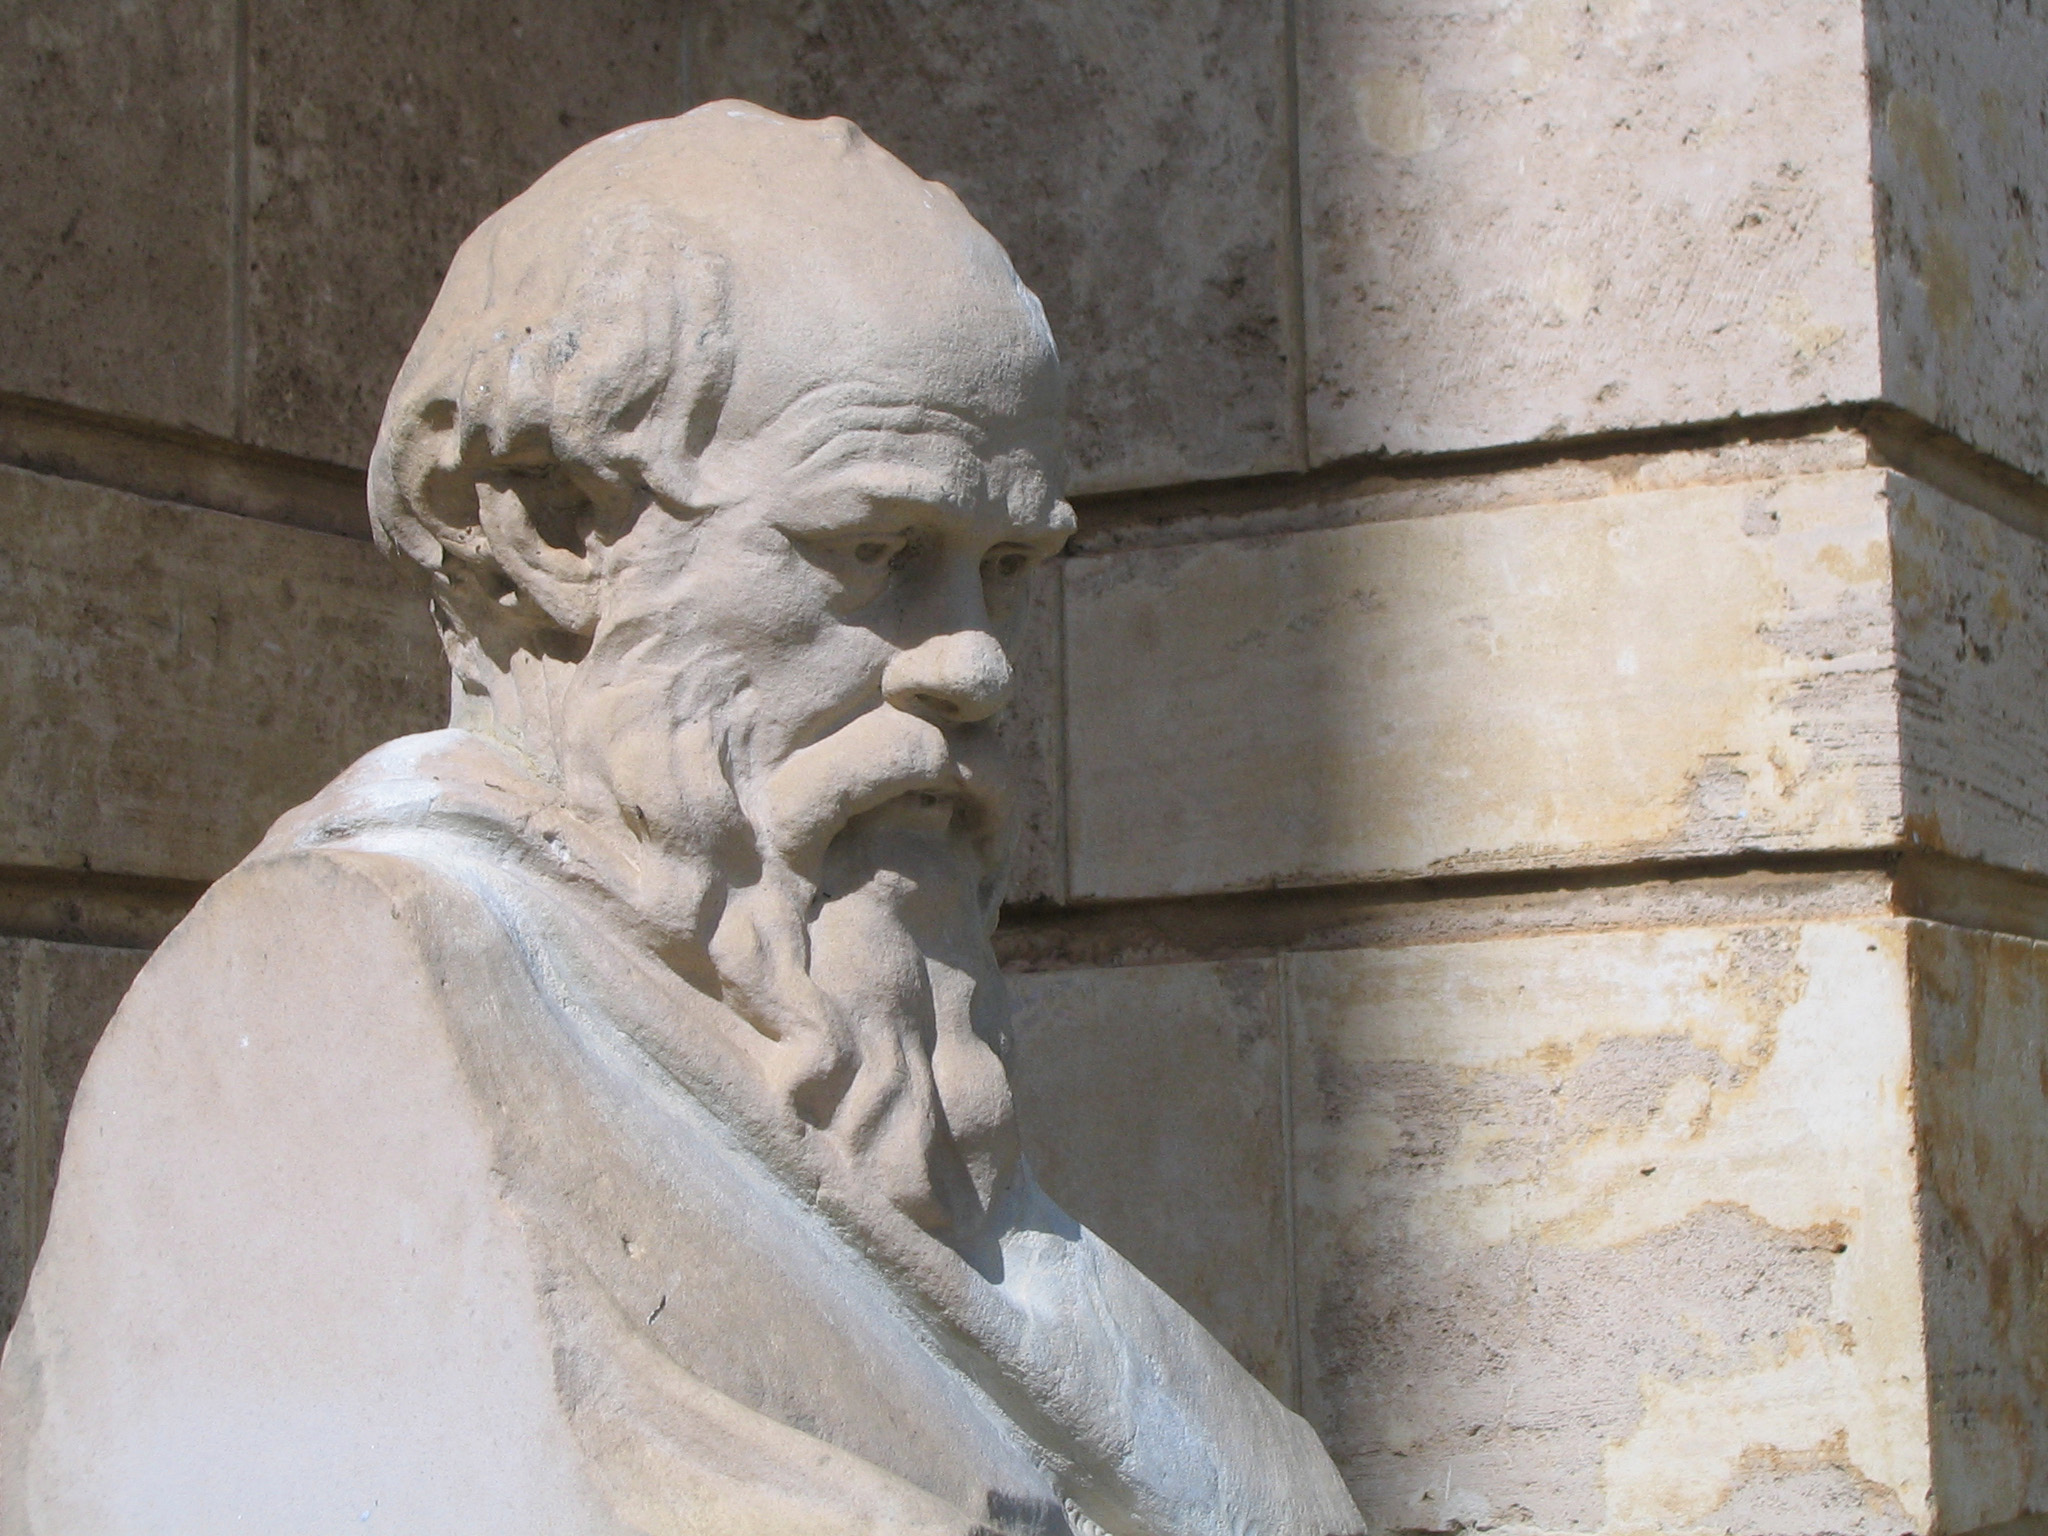 socrates common good Obligation to obey the law: and cleisthenes), the crime was in a sense a common law counted upon to obey the state's commands or to make good soldiers who.